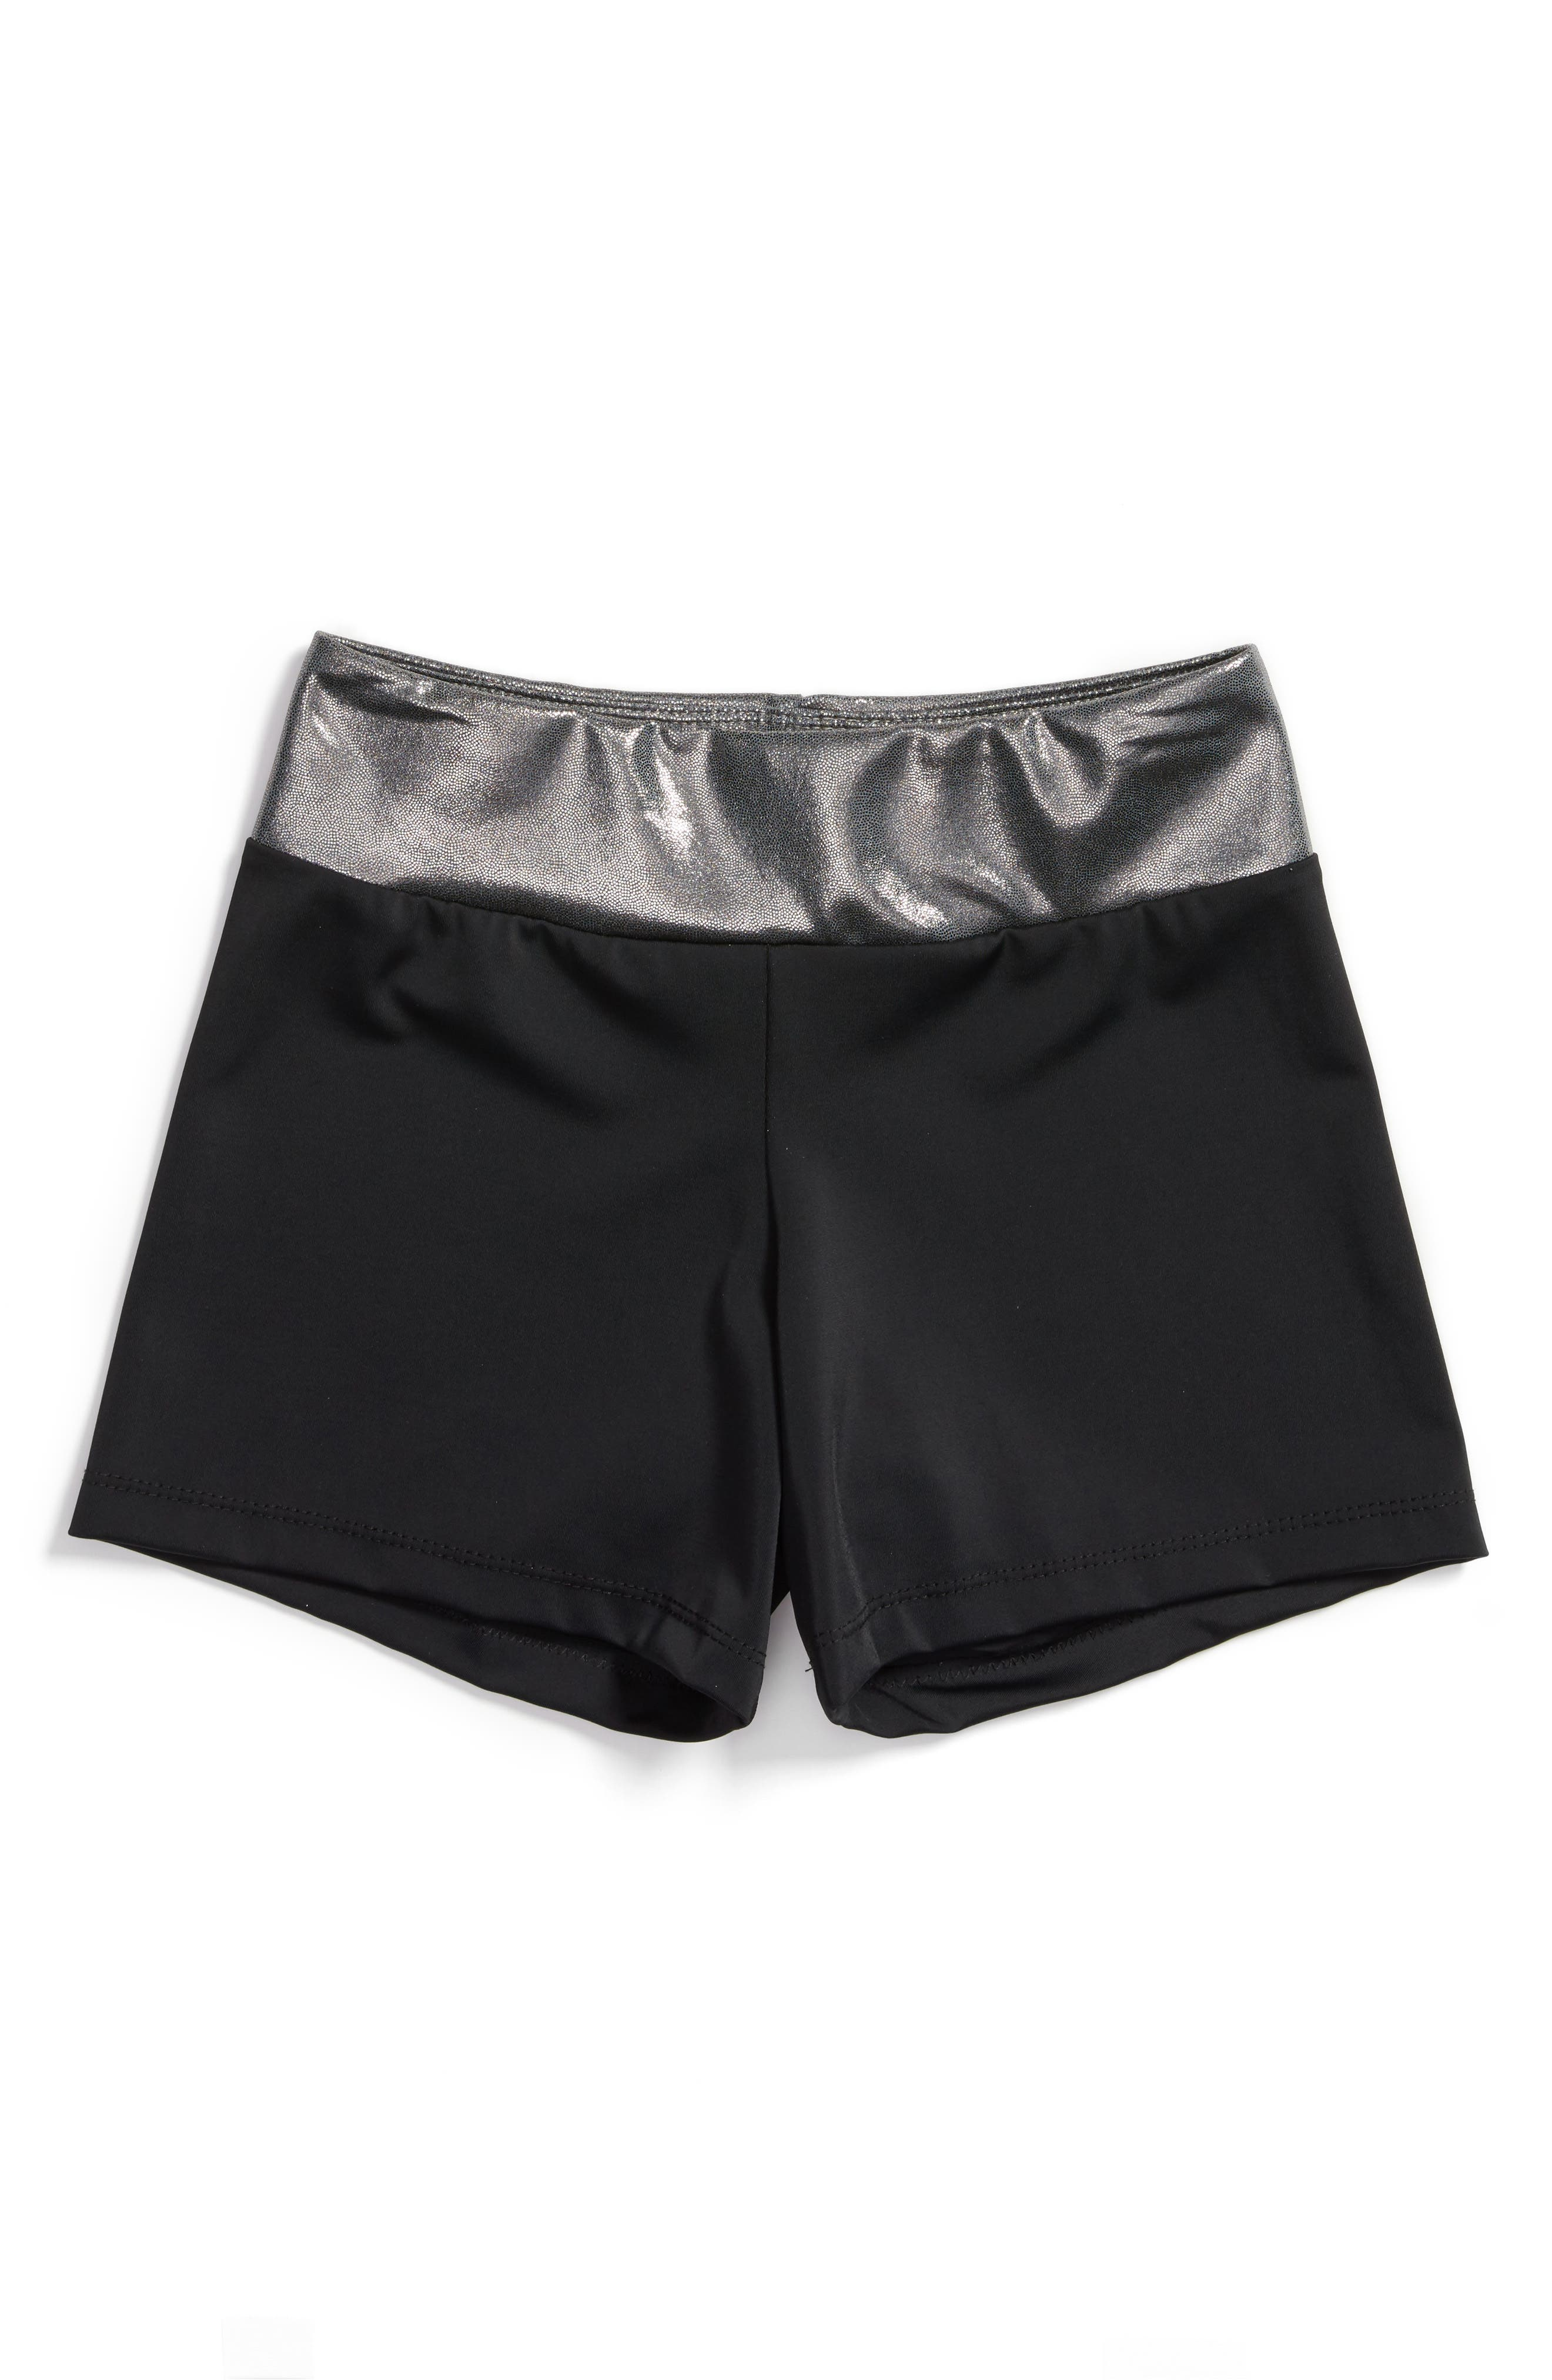 Girl Power Stretch Shorts,                         Main,                         color, 001